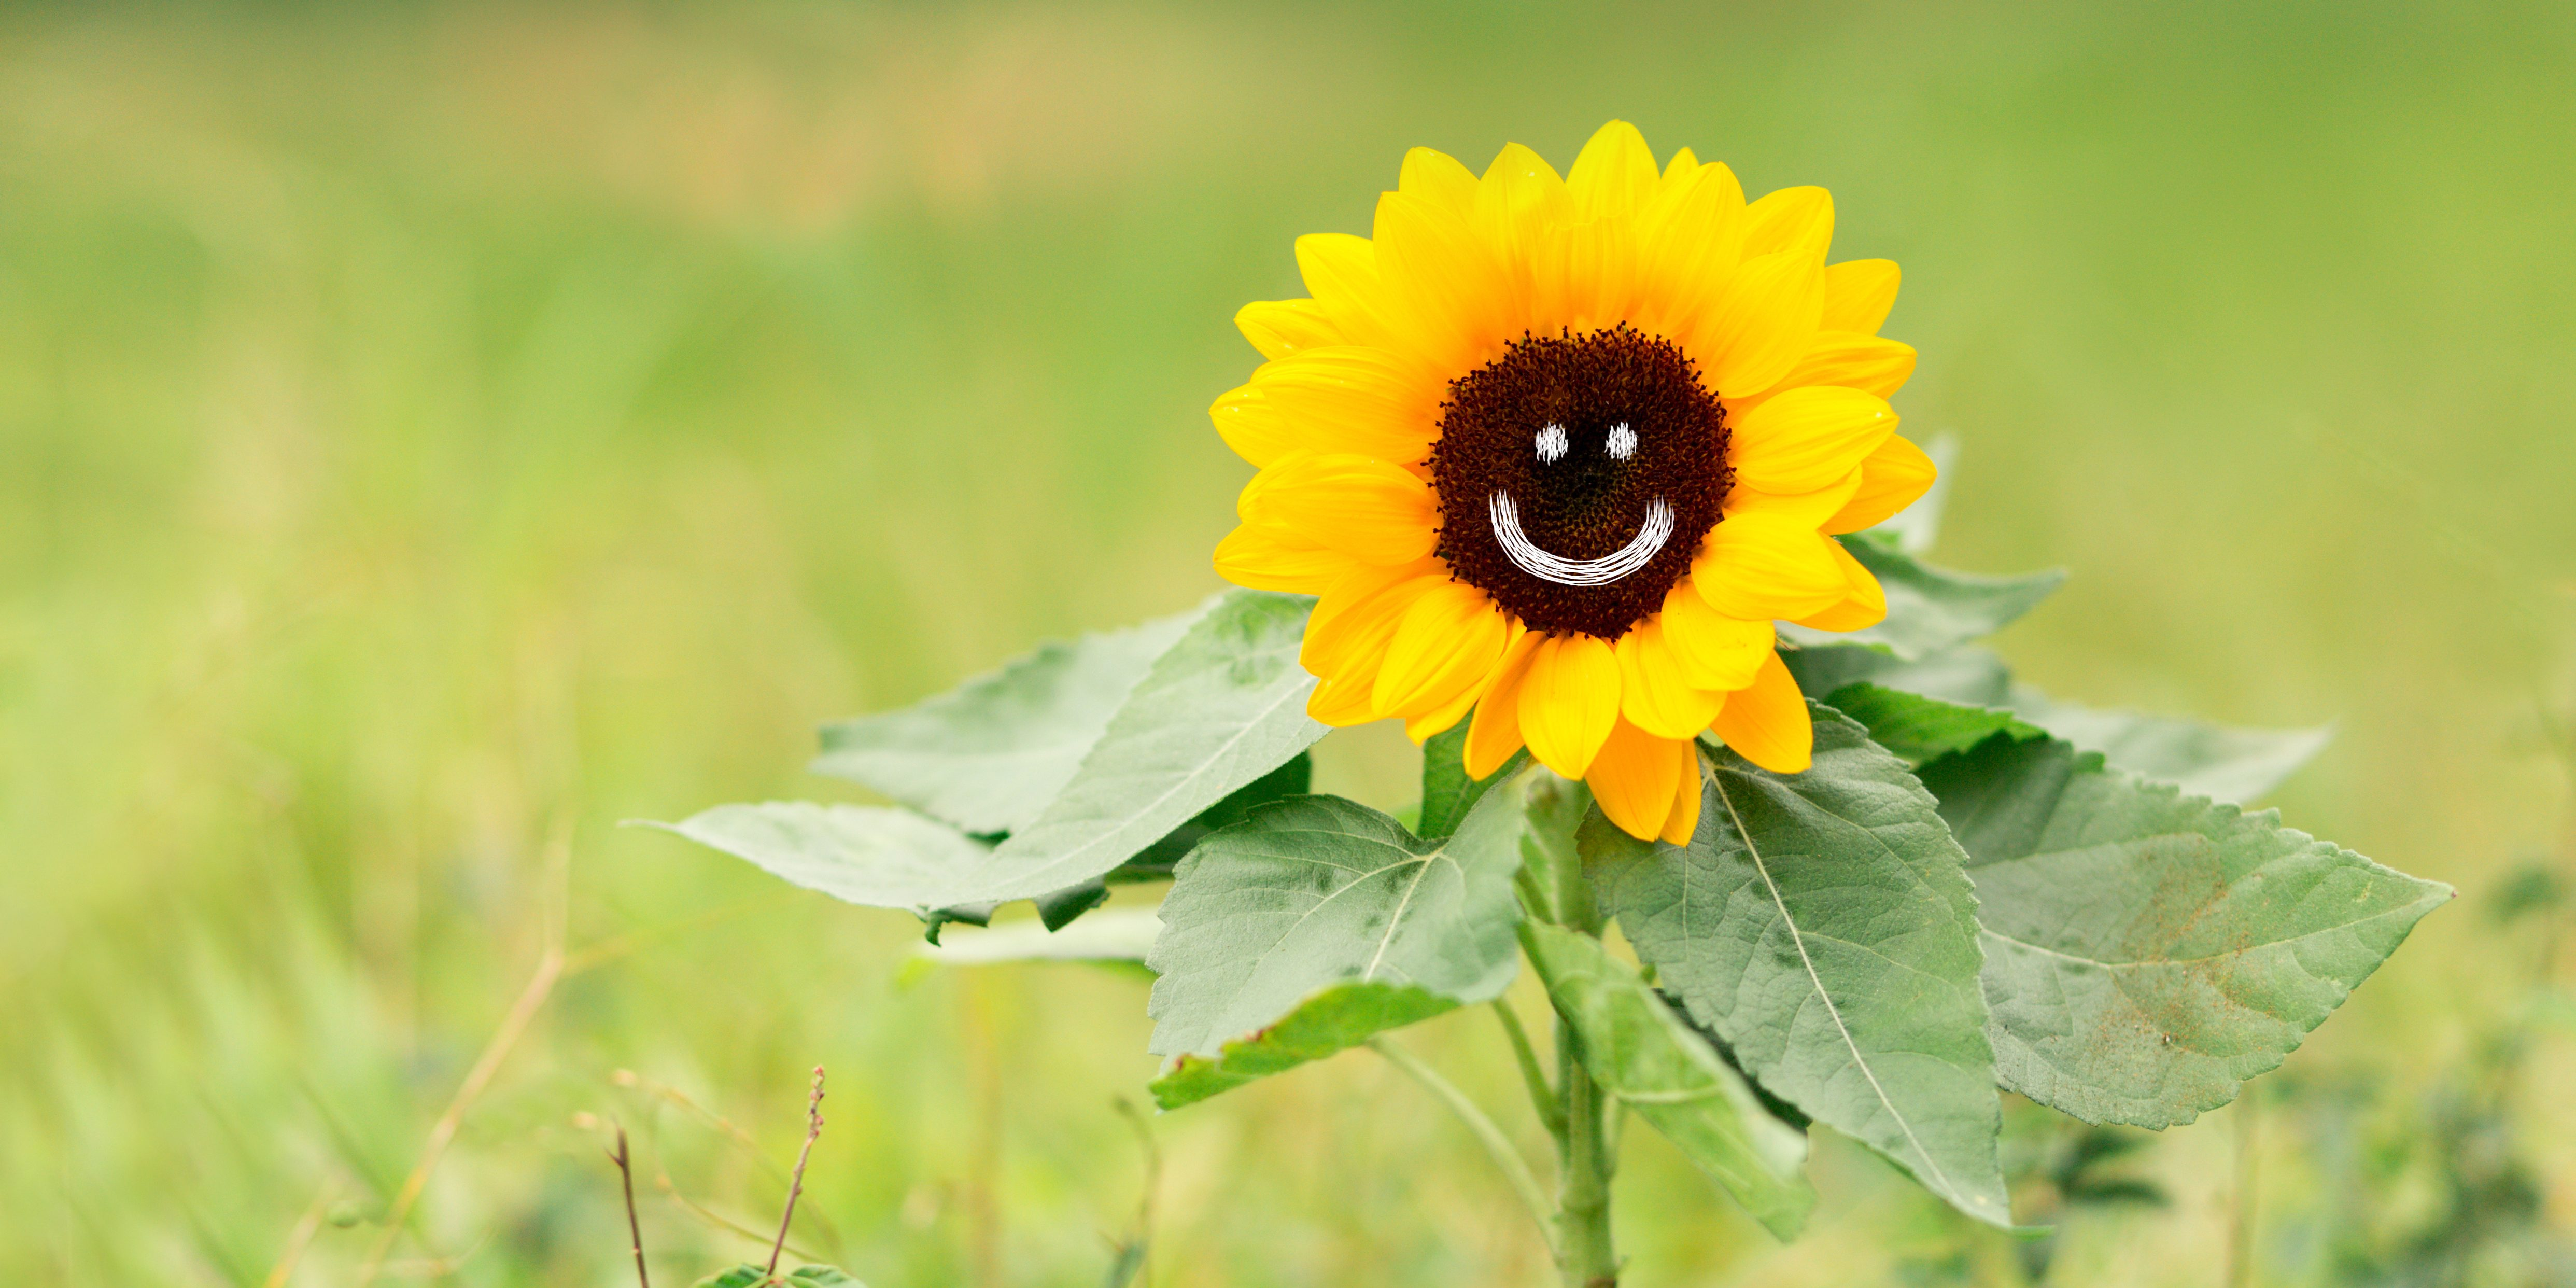 Picture shows sunflower with smiling face